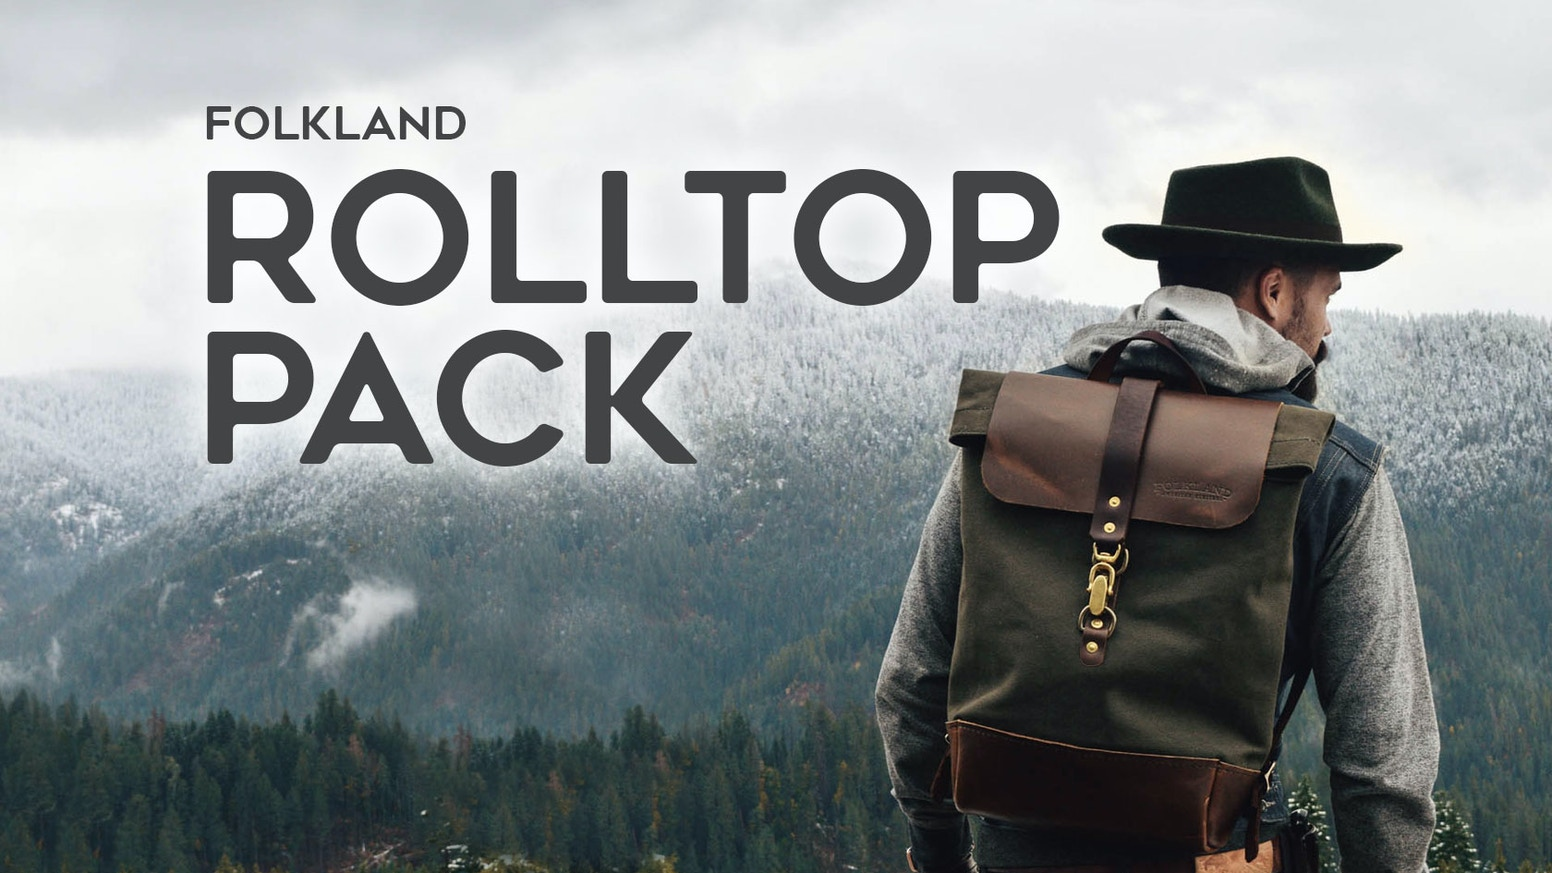 75c7d5193211 The Folkland Rolltop Backpack is simple in form   function